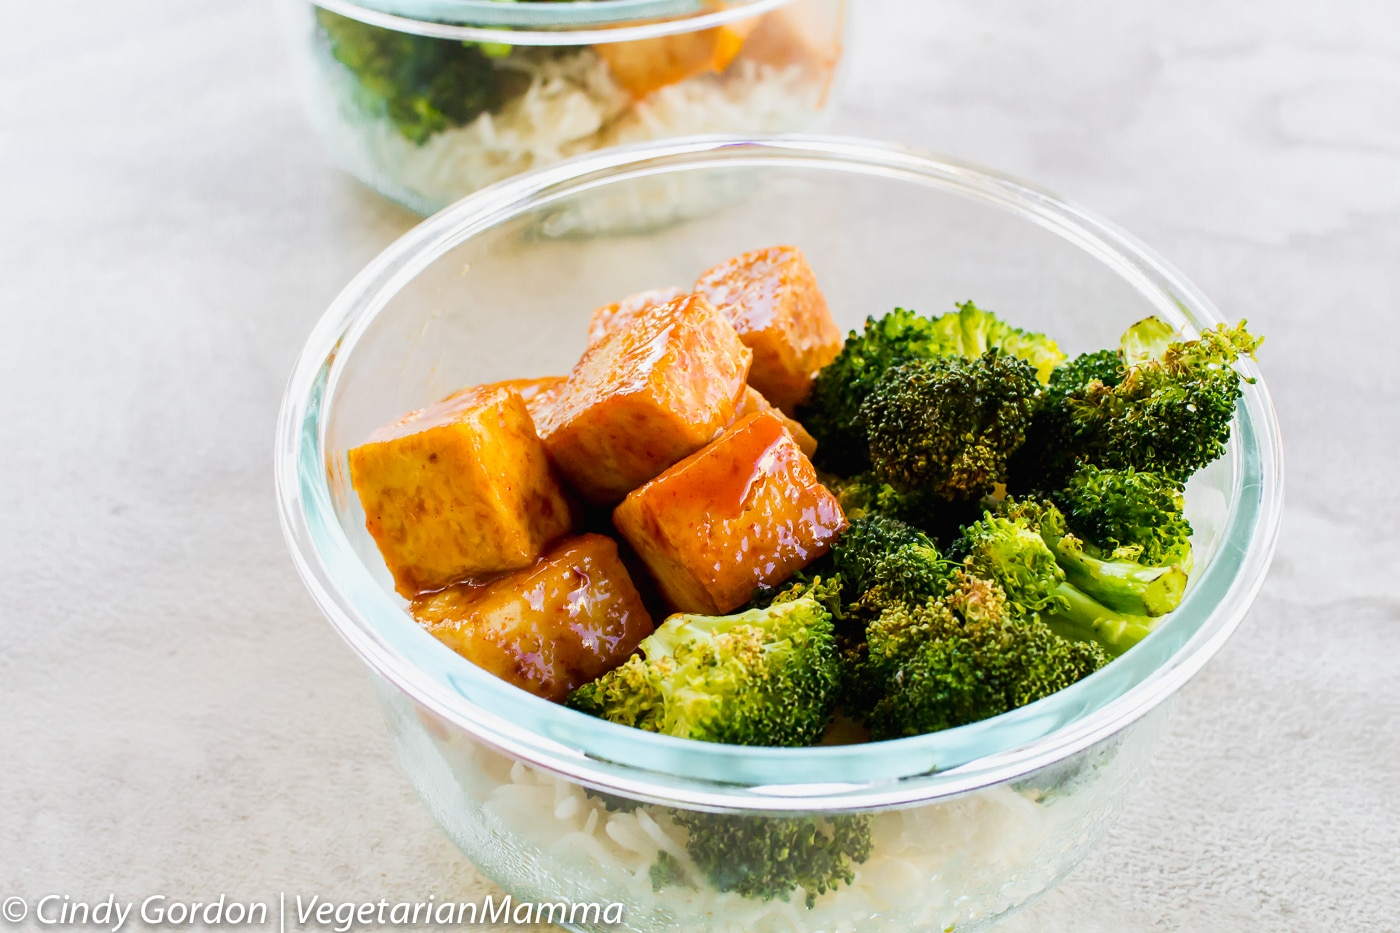 small glass bowl full of rice, broccoli, and tofu cubes.